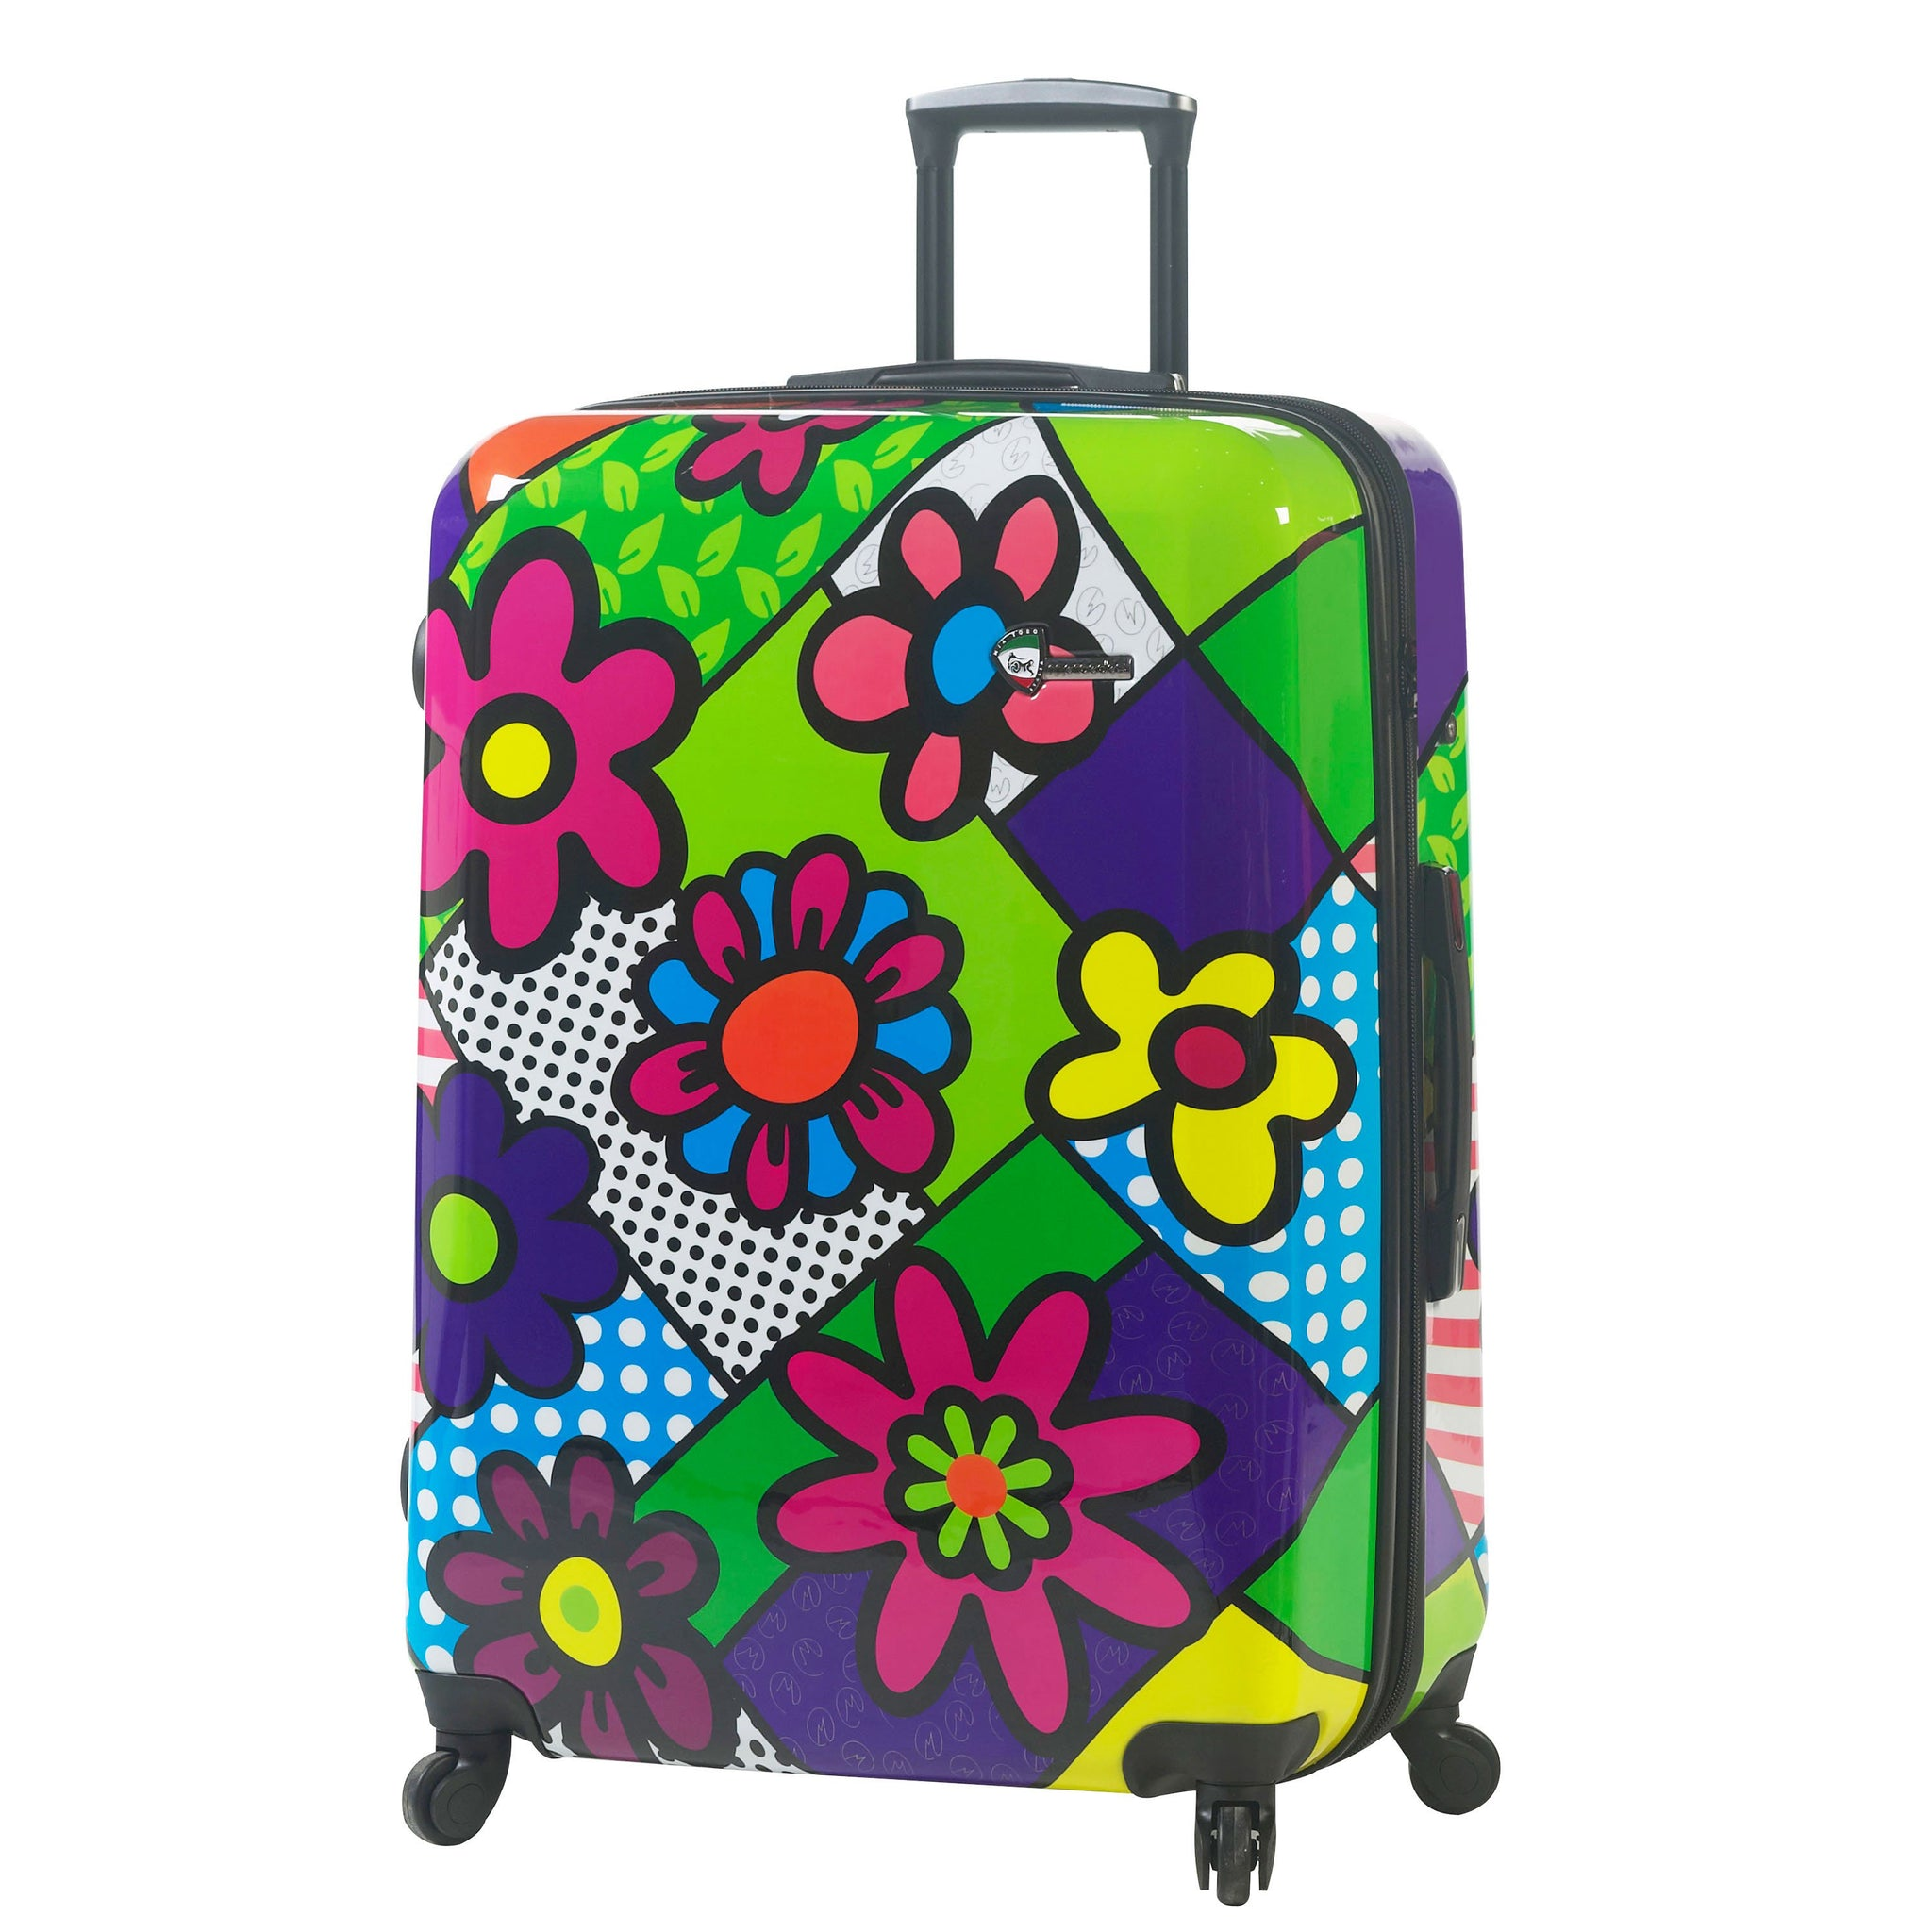 "M by Mia Toro - Flower Hardside 28"" Spinner Luggage"